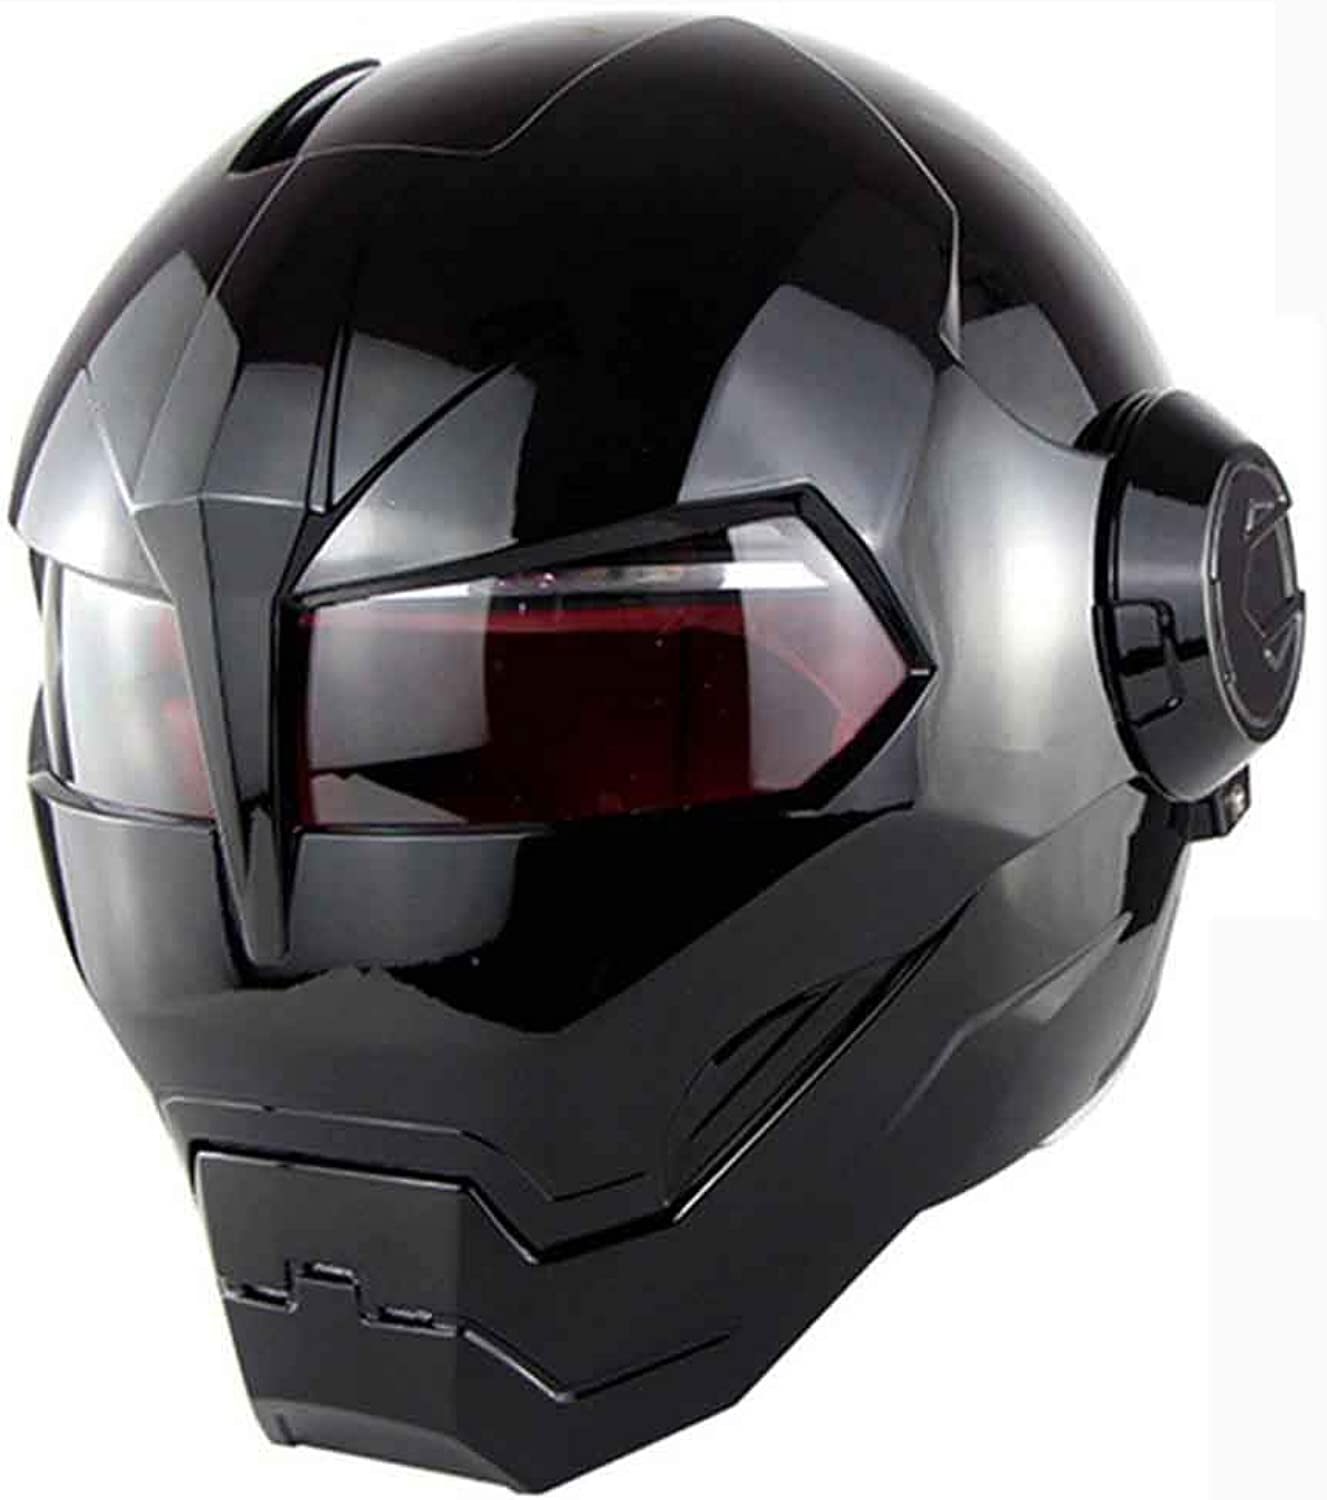 Motorcycle Helmet Cycling Helmet Full face Helmet Retro Style Halle Open face Helmet Highway Locomotive